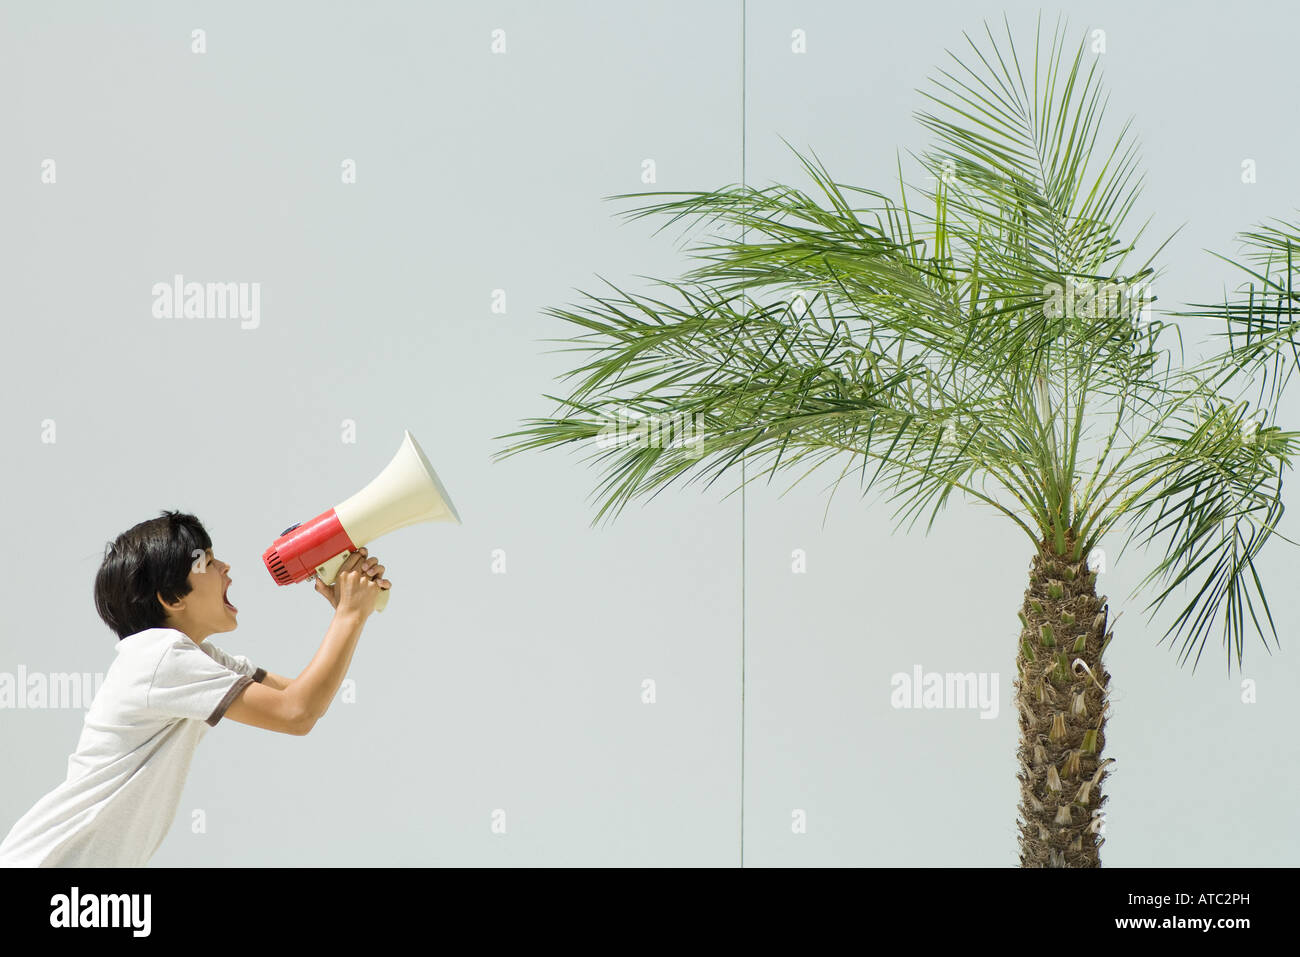 Boy yelling at palm tree with megaphone - Stock Image